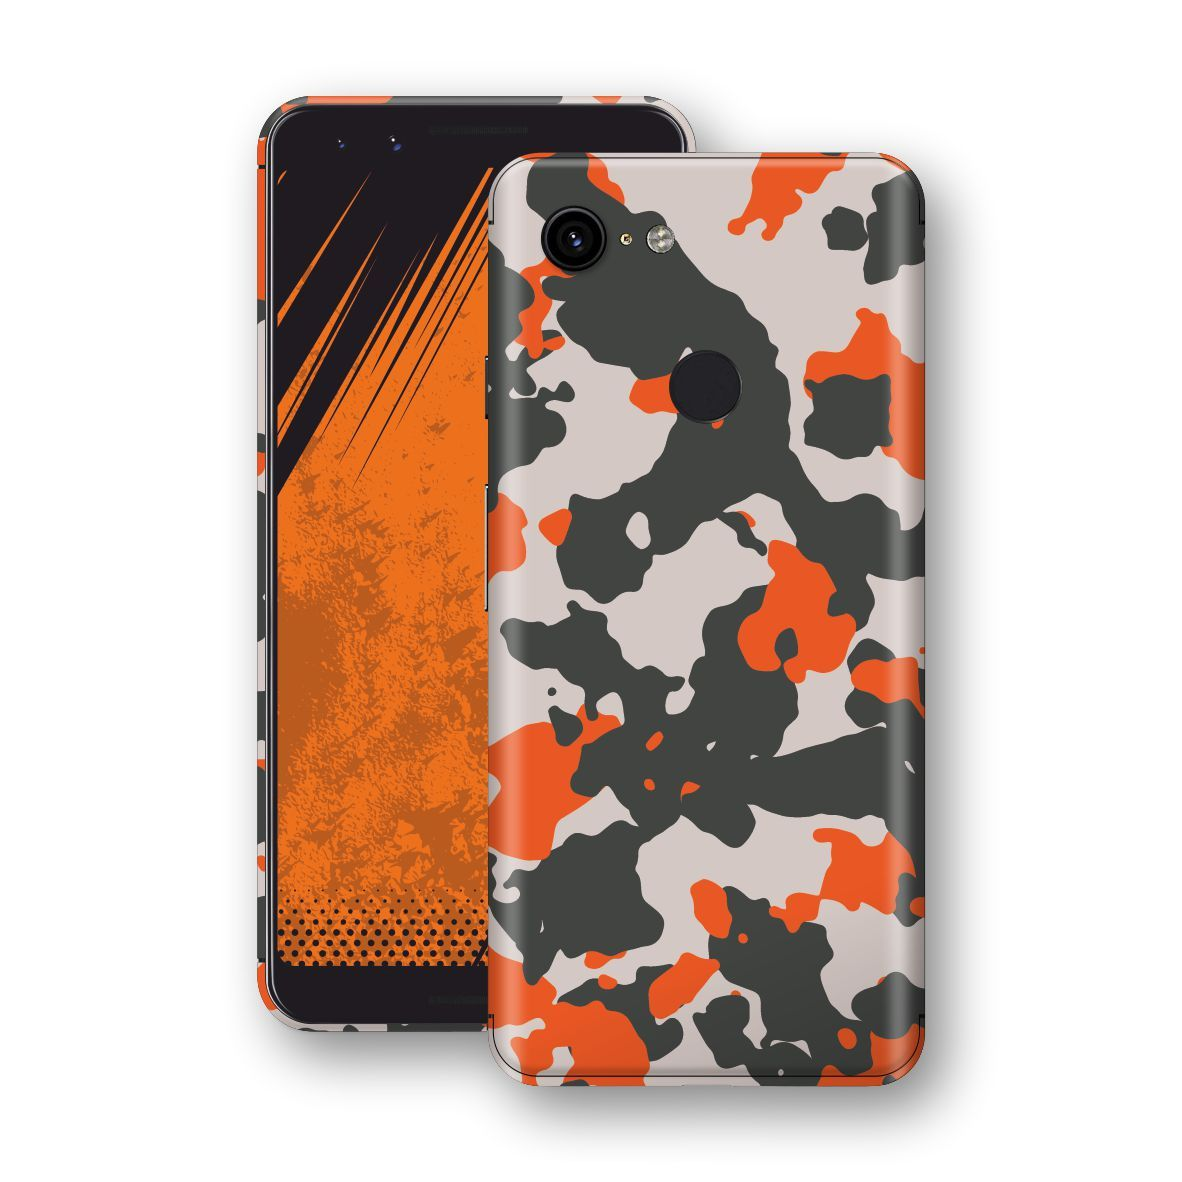 Google Pixel 3 Camouflage Orange Skin, Decal, Wrap, Protector, Cover by EasySkinz | EasySkinz.com